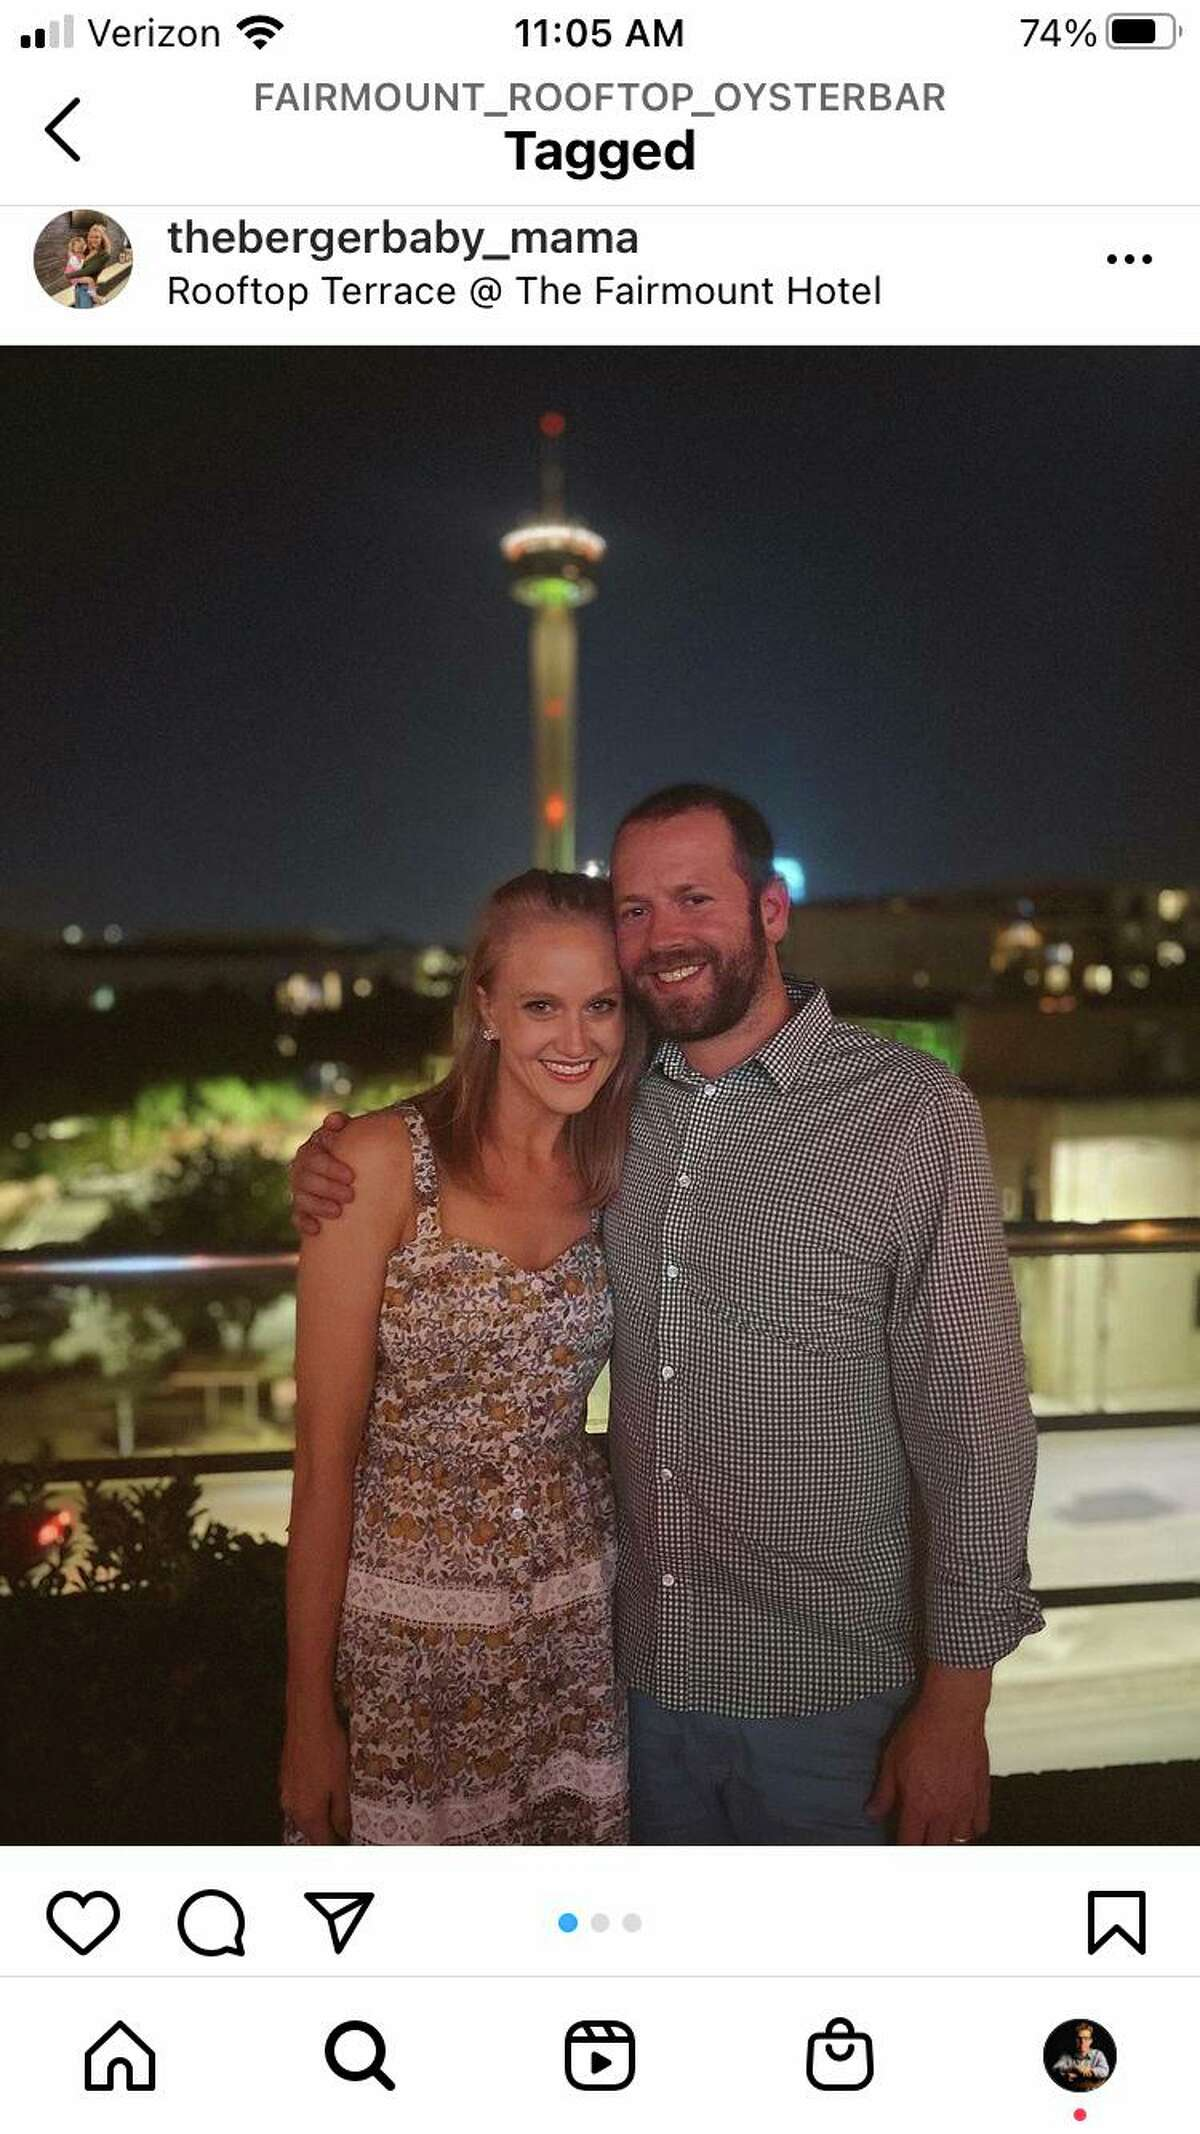 Instagram photos from Fairmount Rooftop Oyster Bar often feature the Tower of the Americas in the background.